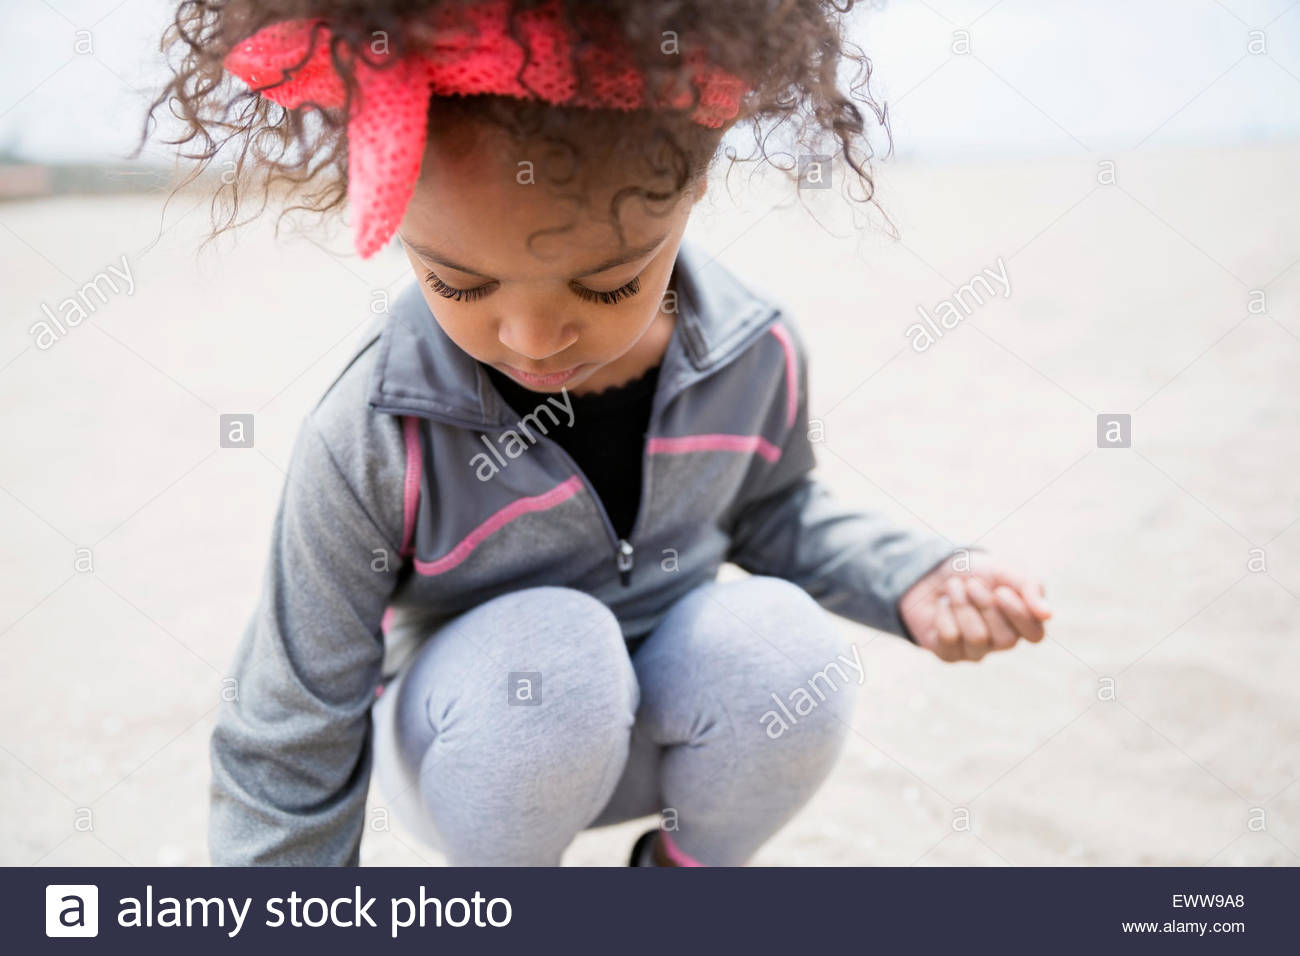 Girl with curly hair crouching on beach - Stock Image